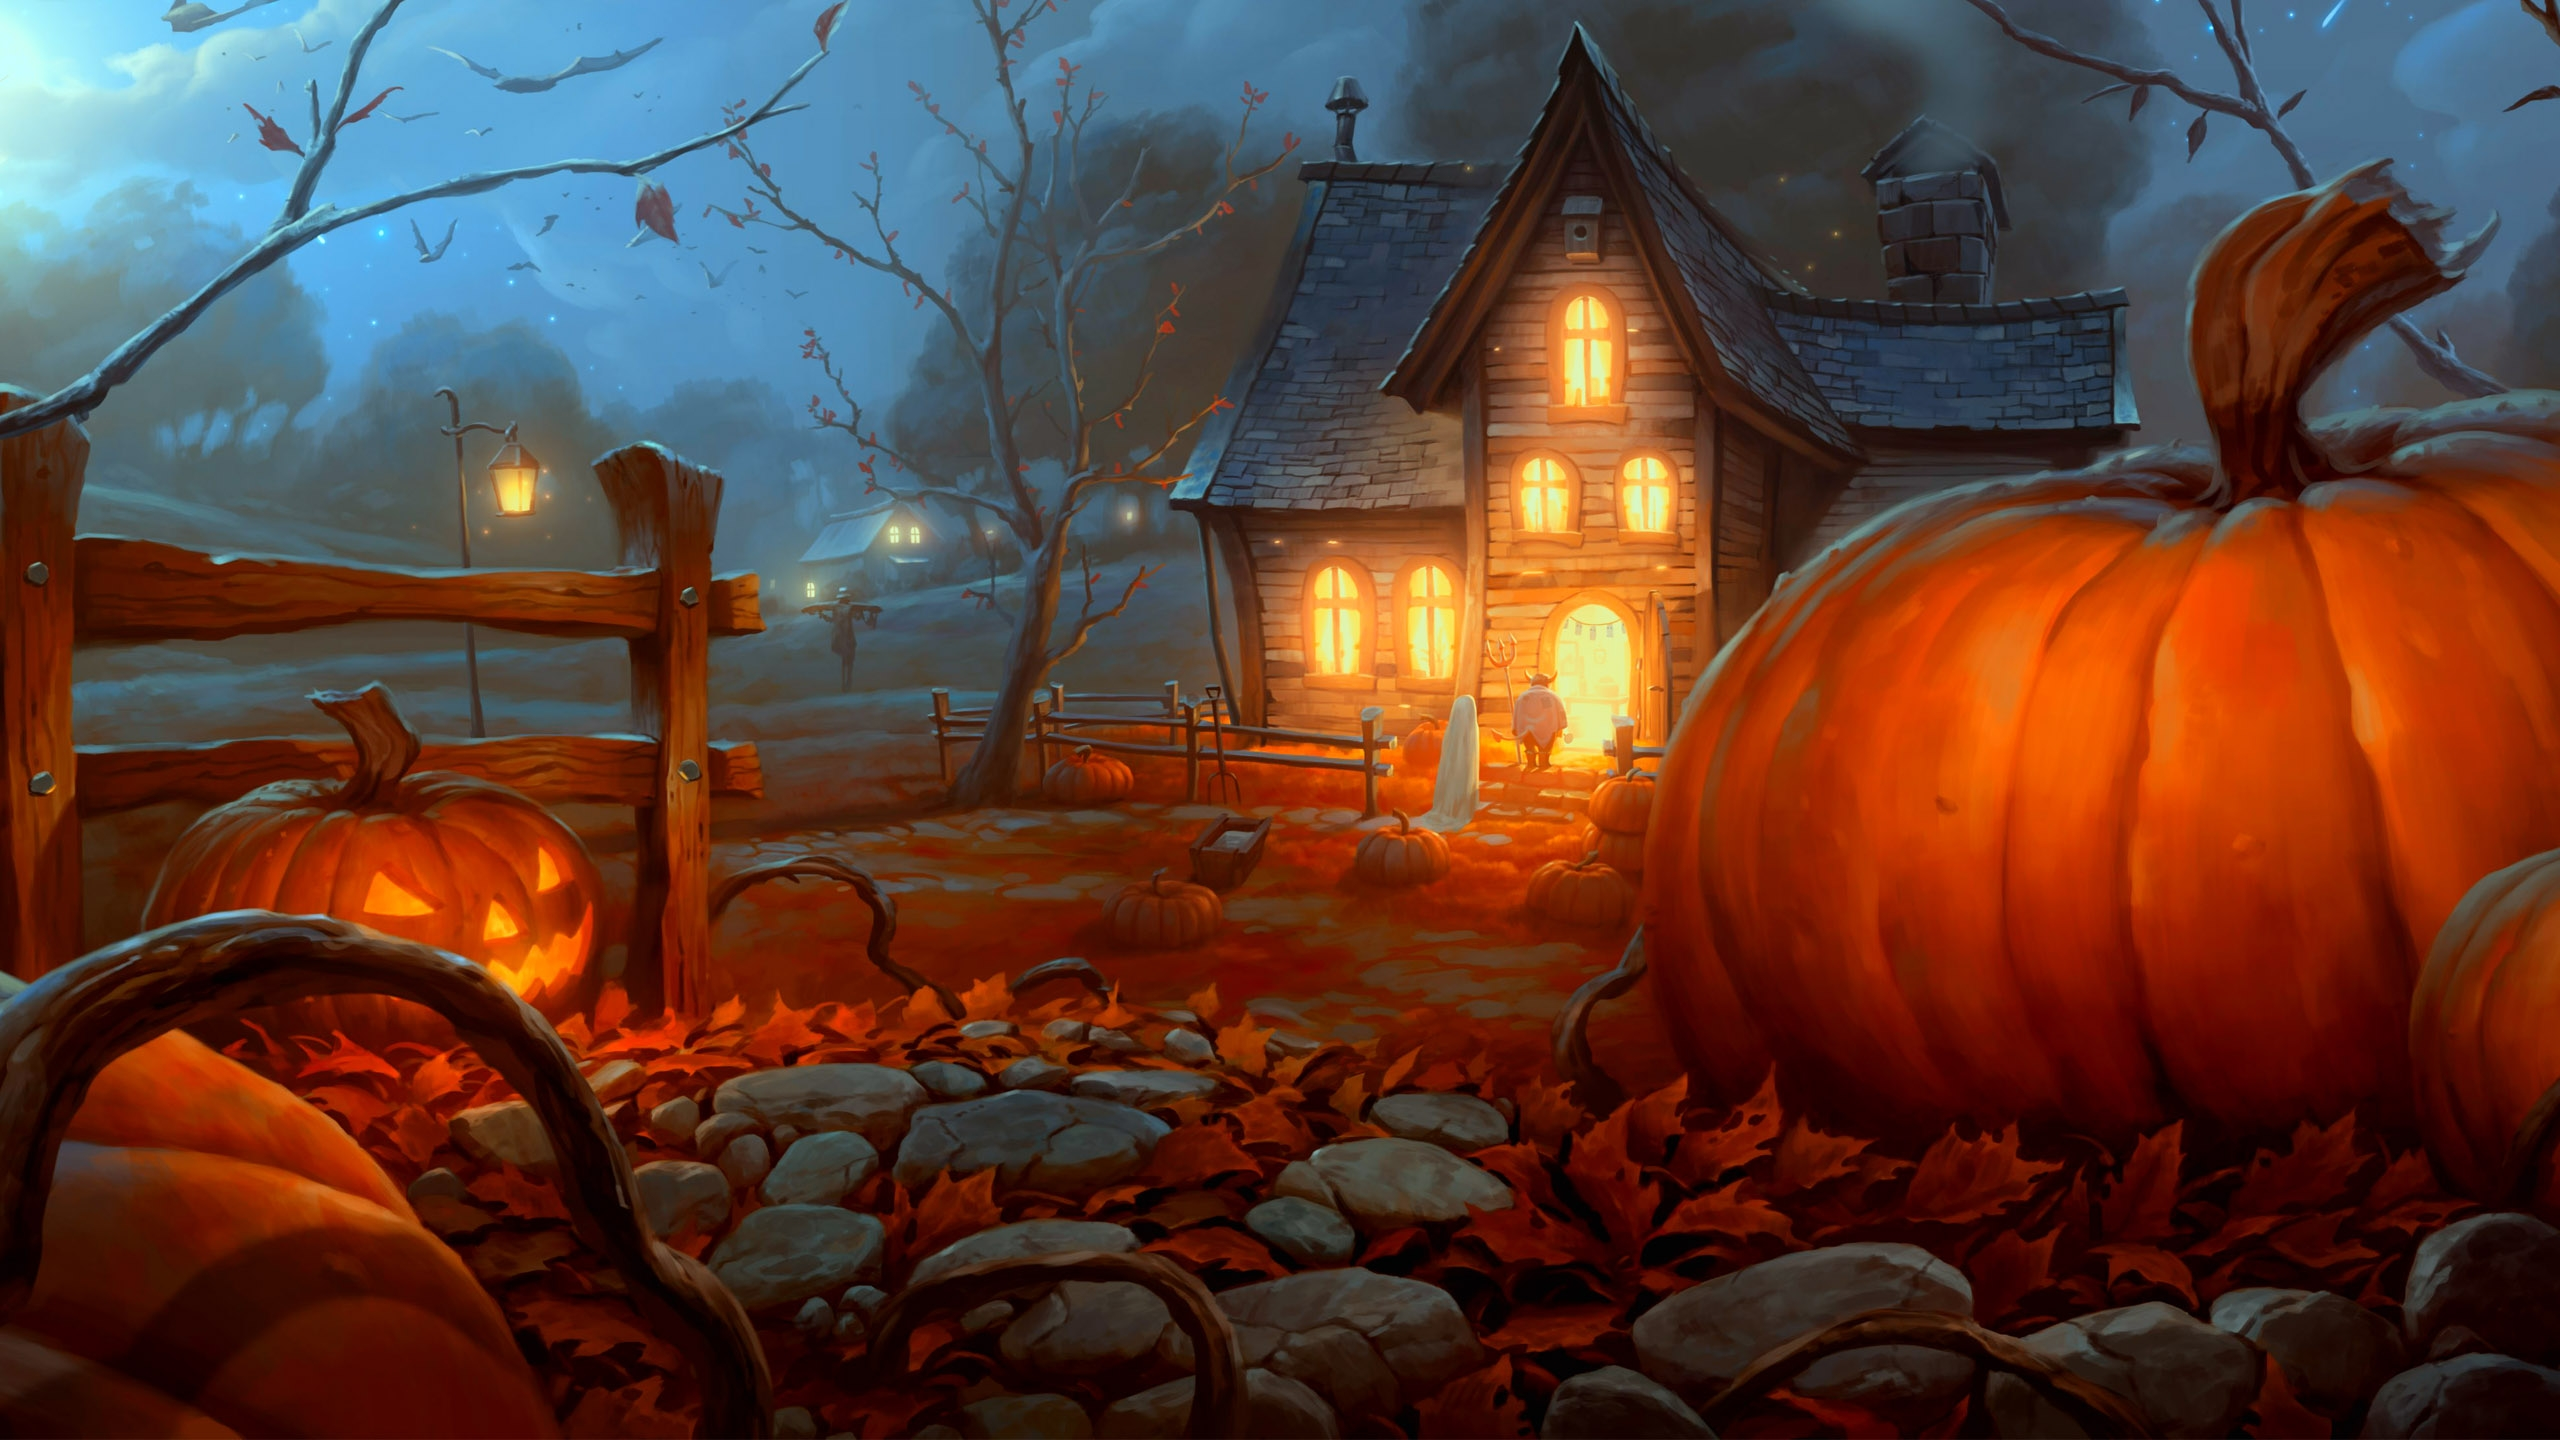 is under the 3d wallpapers category of hd wallpapers 3d halloween 2560x1440